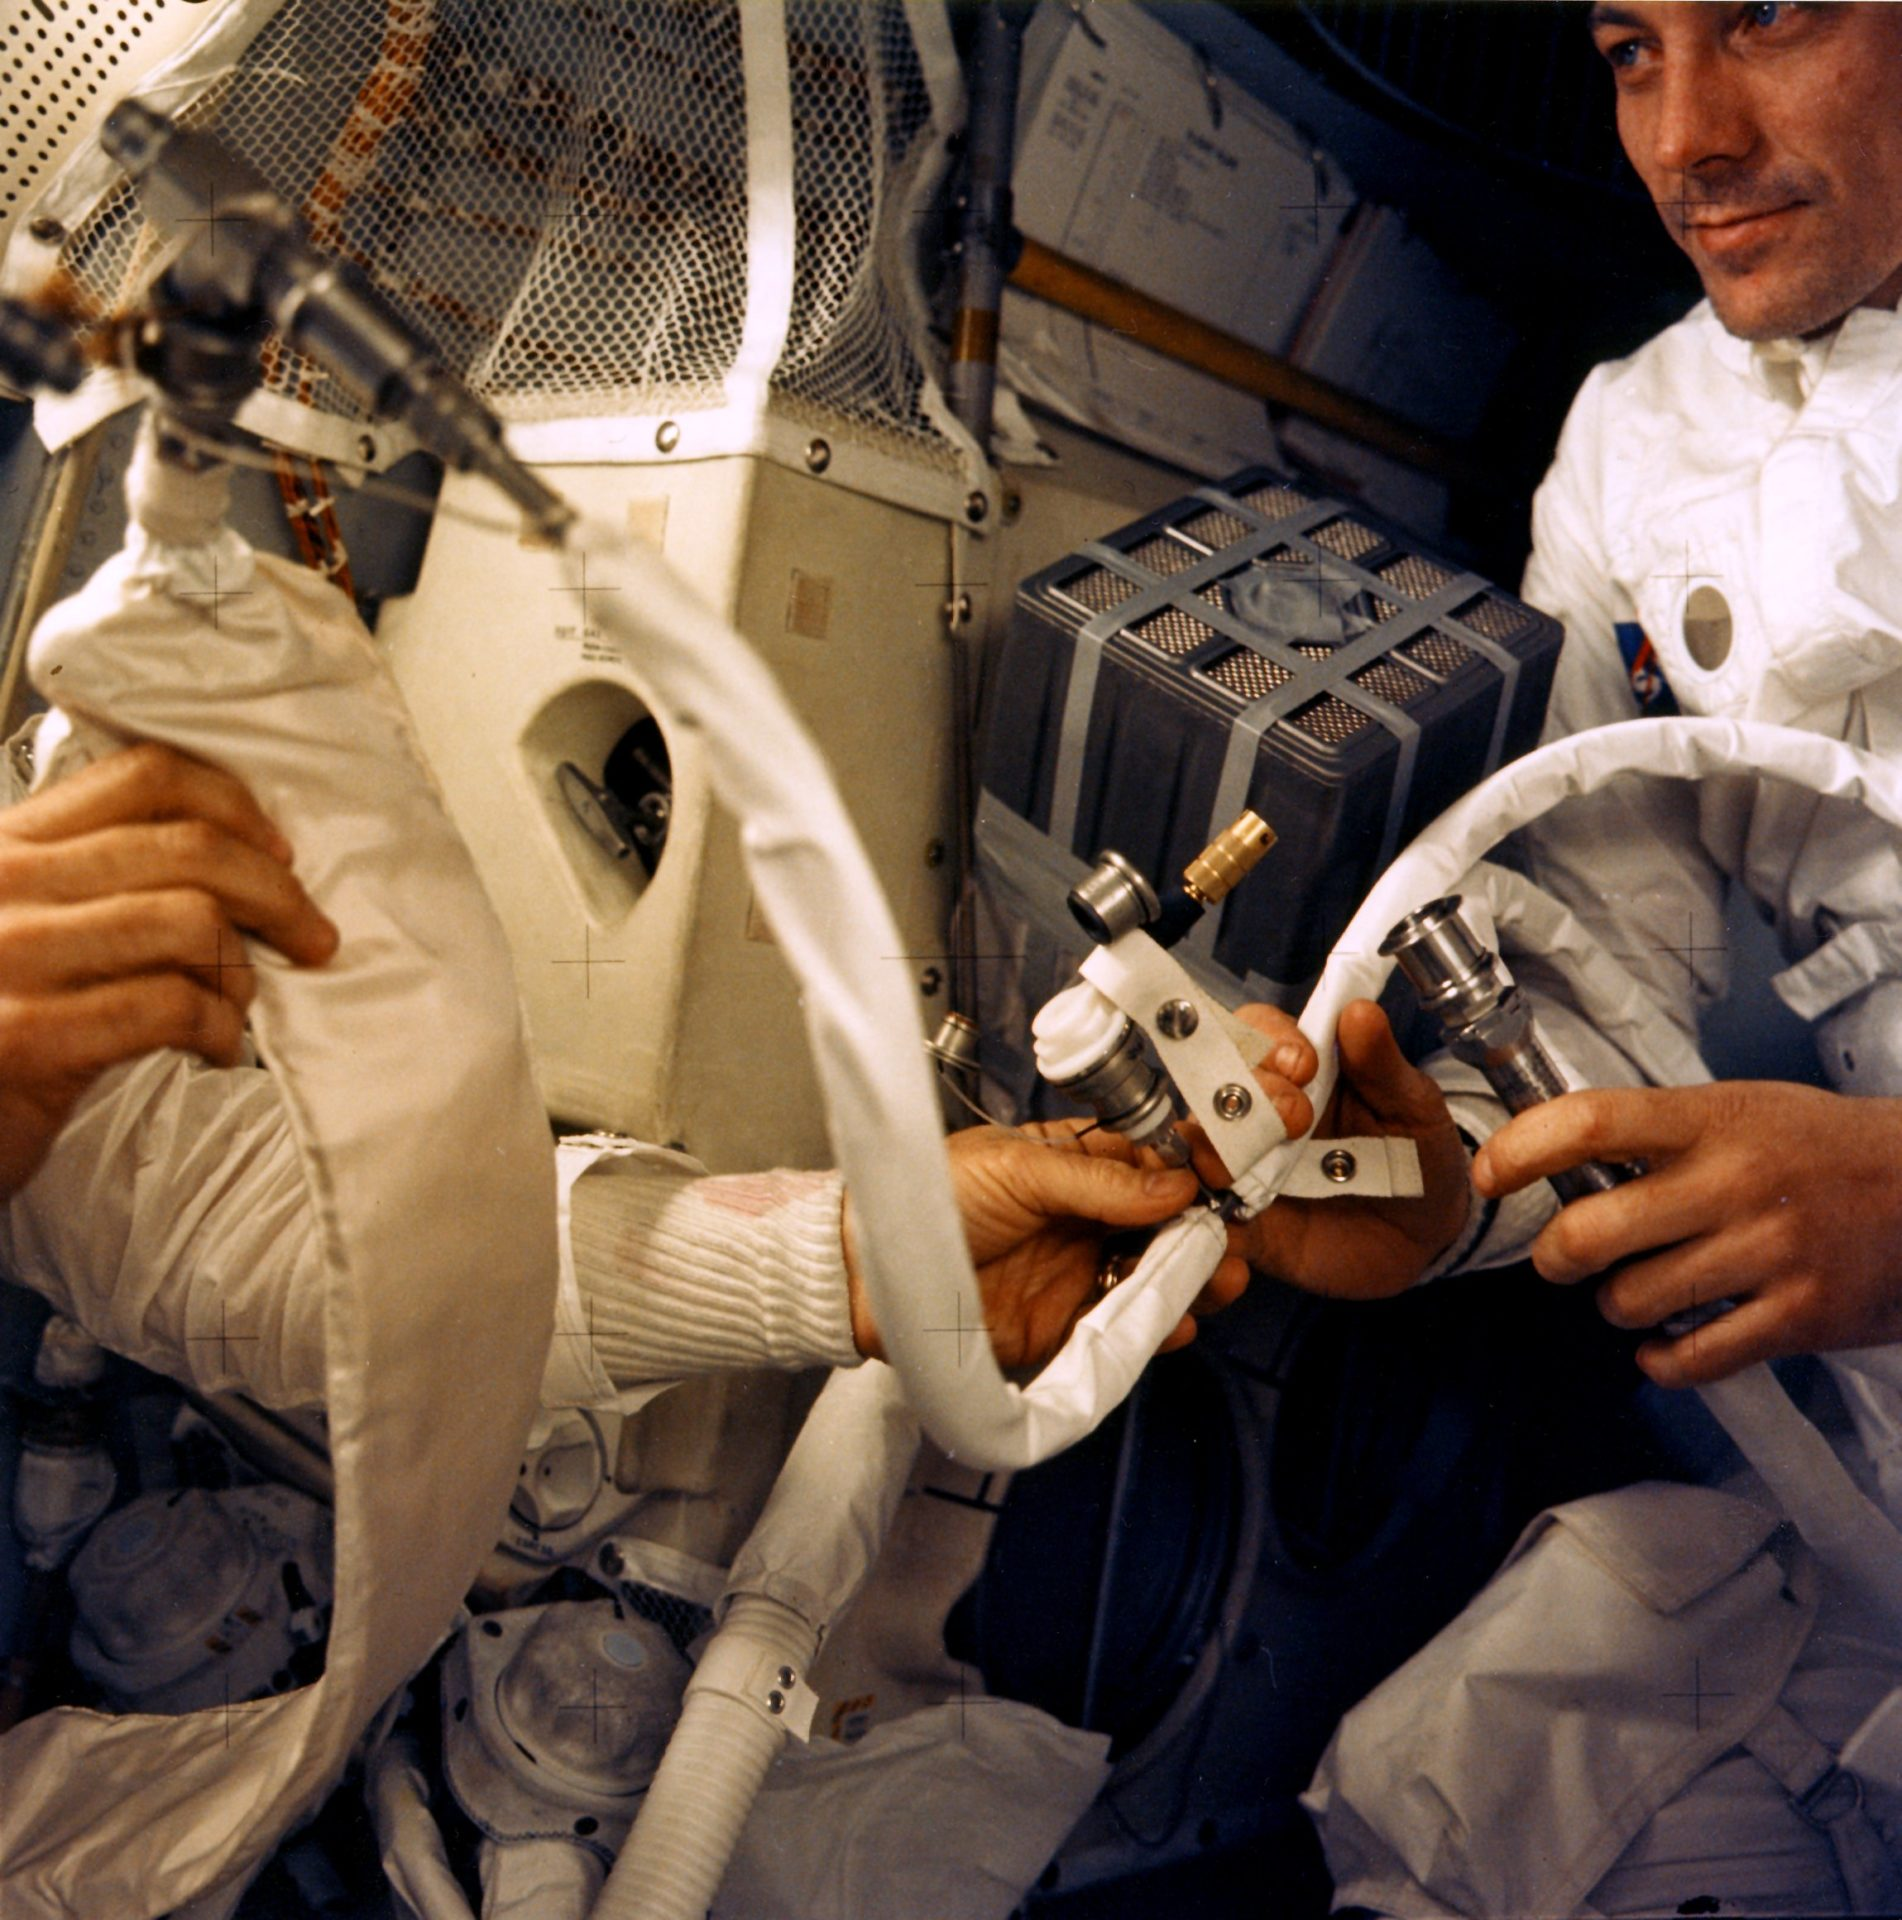 Astronauts working on repairs